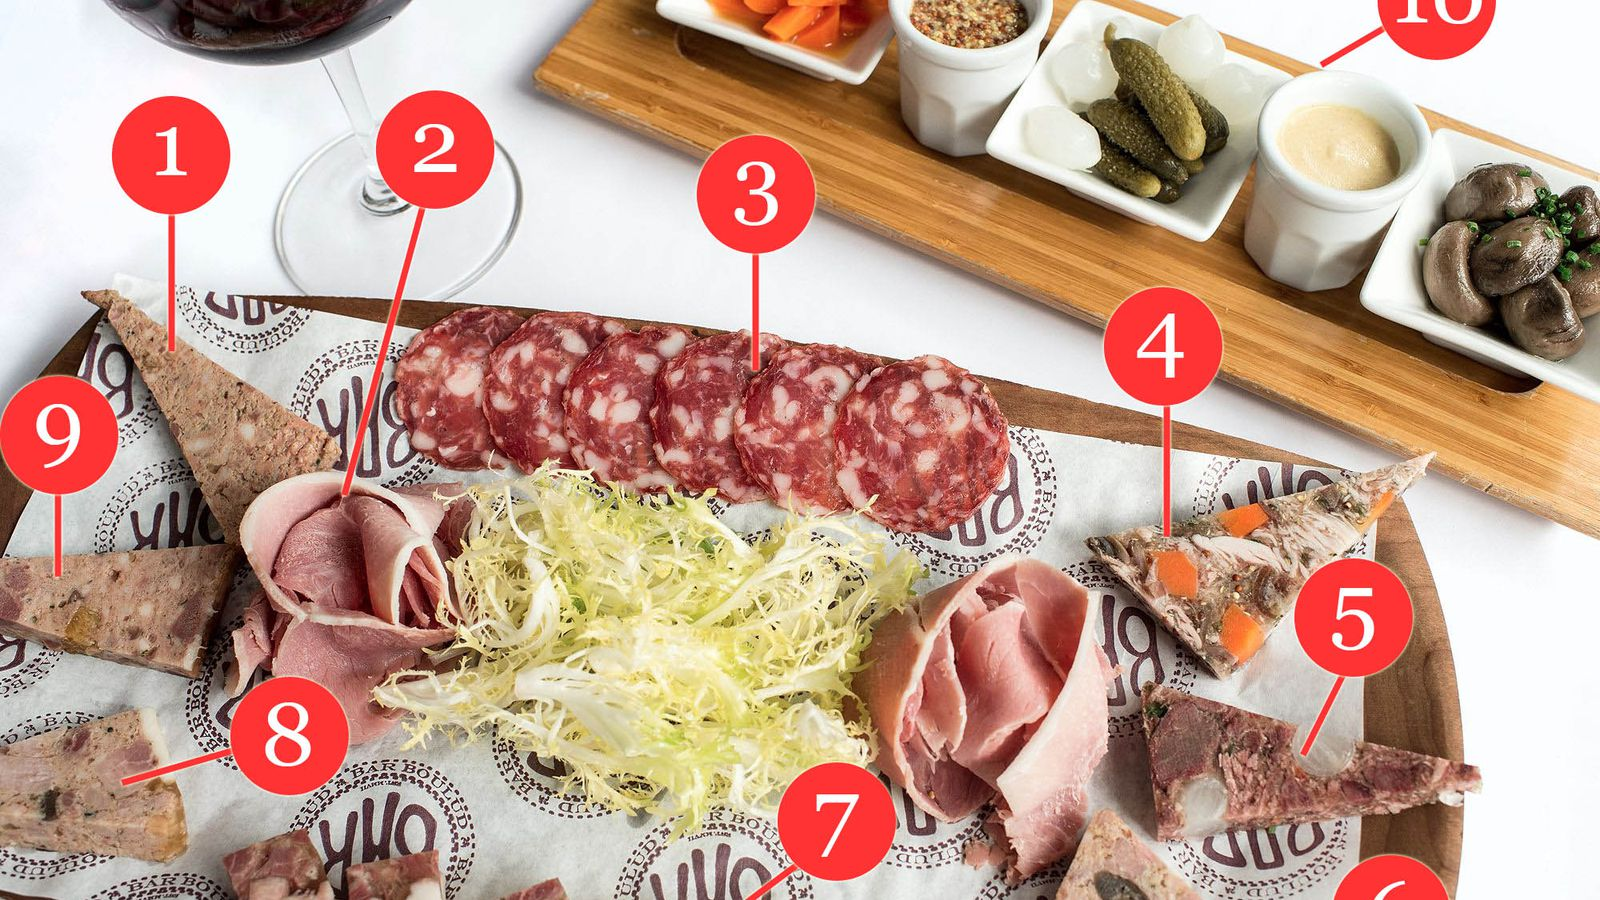 The Charcuterie Board At Bar Boulud In New York City Eater